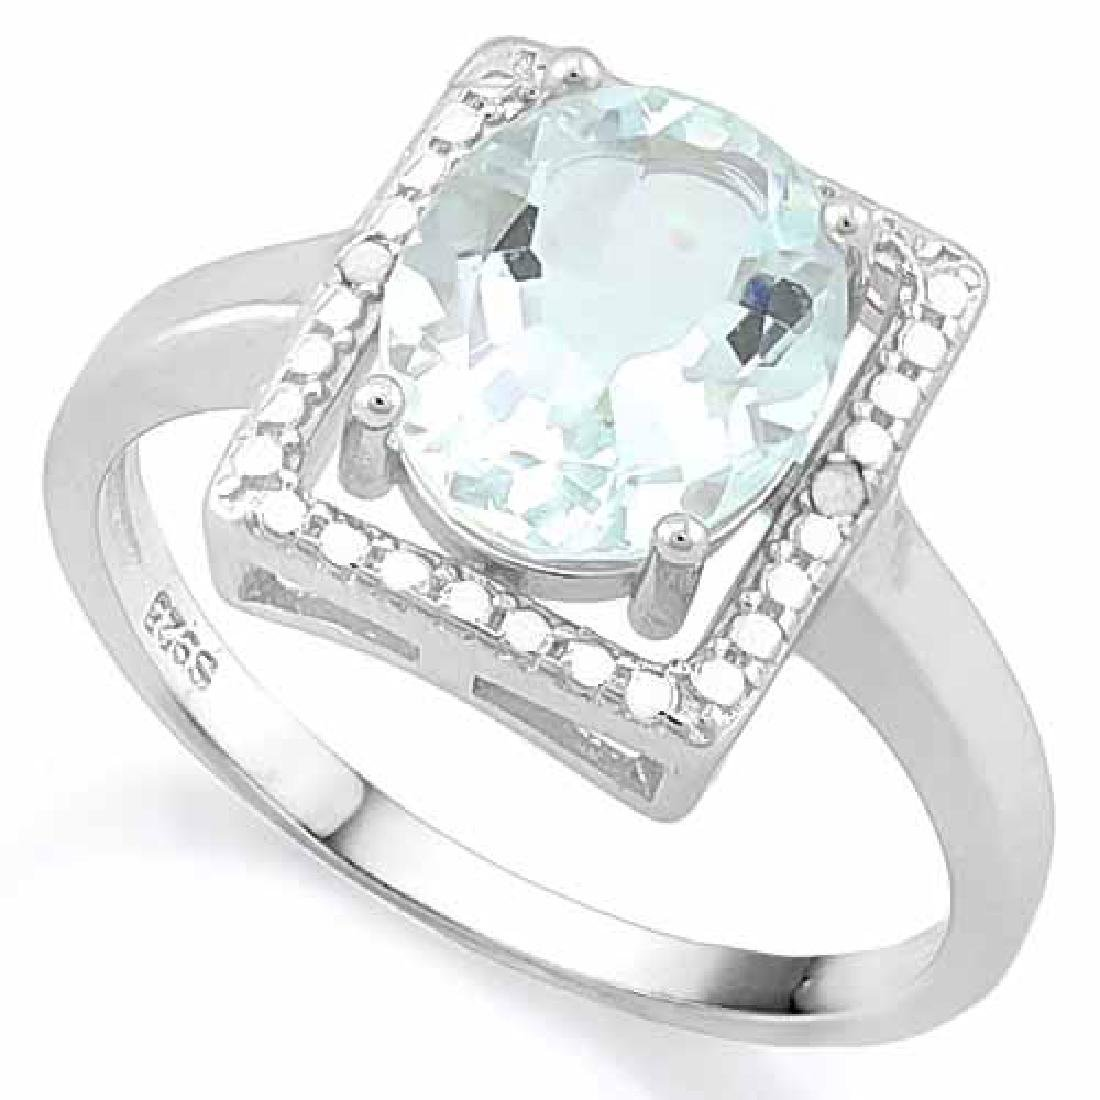 2 1/4 CARAT AQUAMARINE & DIAMOND 925 STERLING SILVER RI